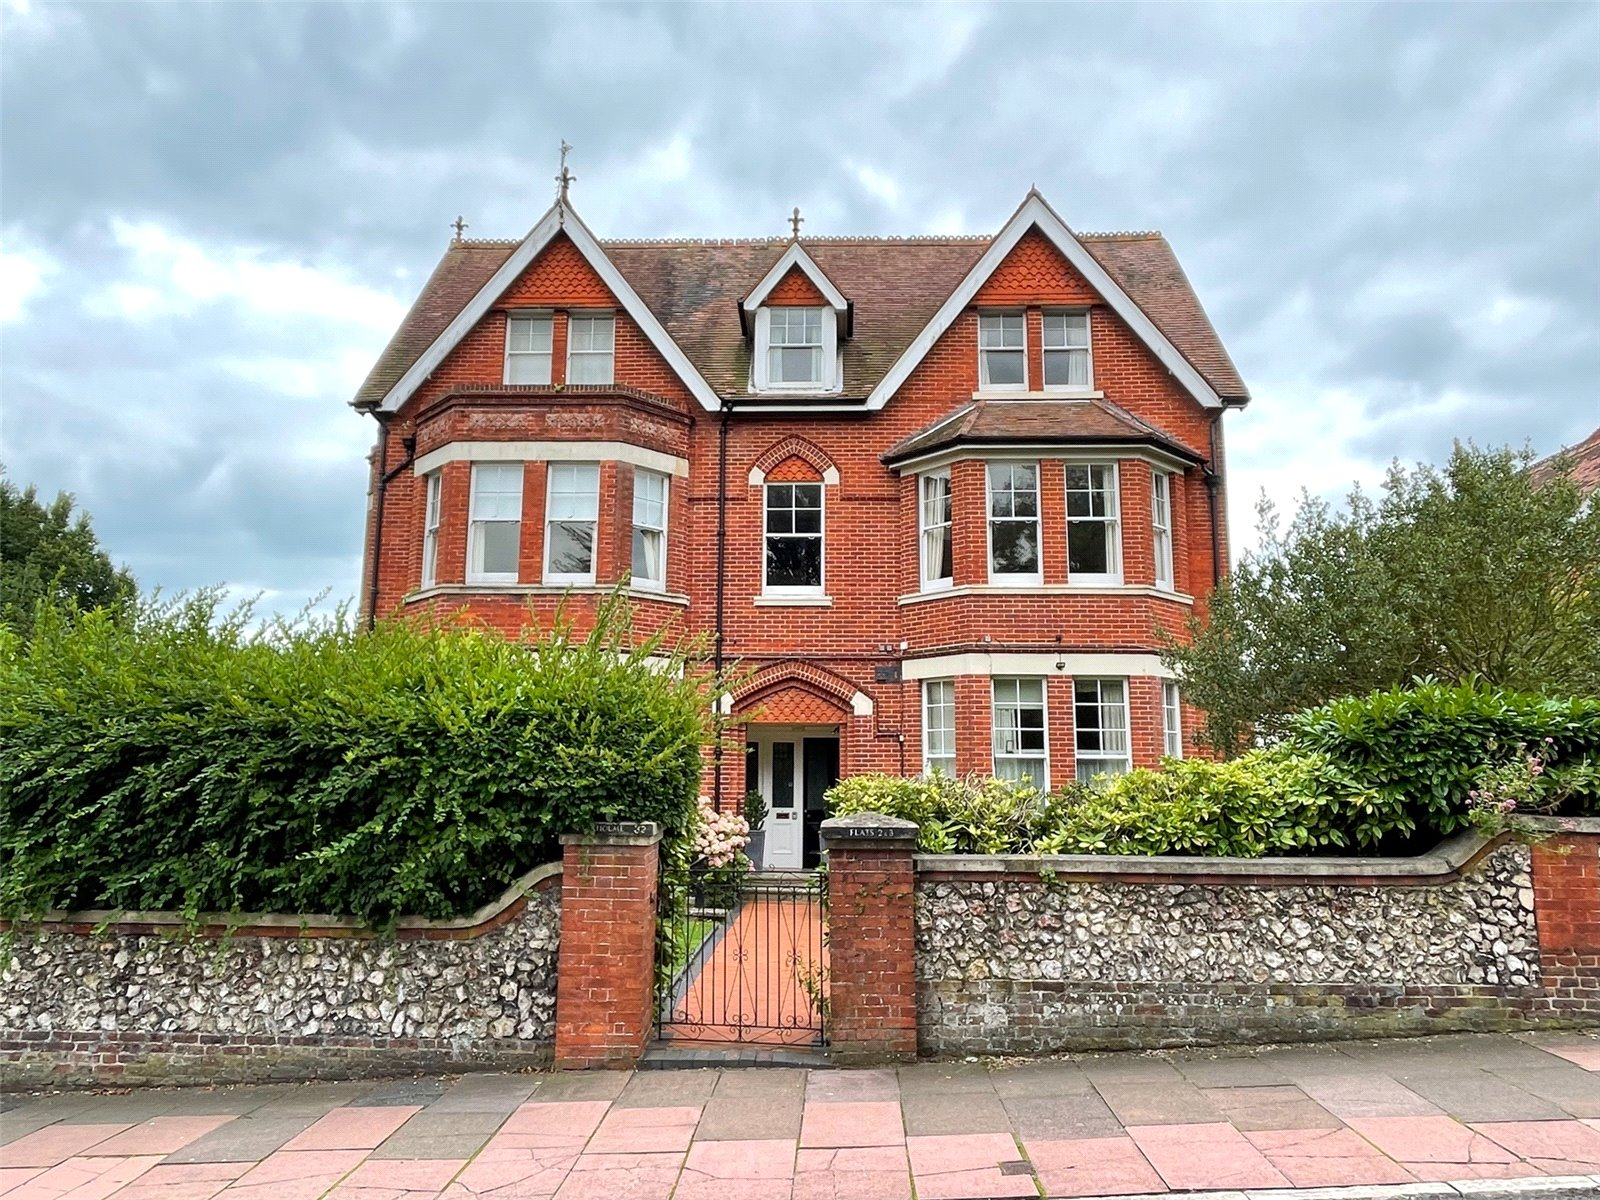 Meads Road, Meads, Eastbourne